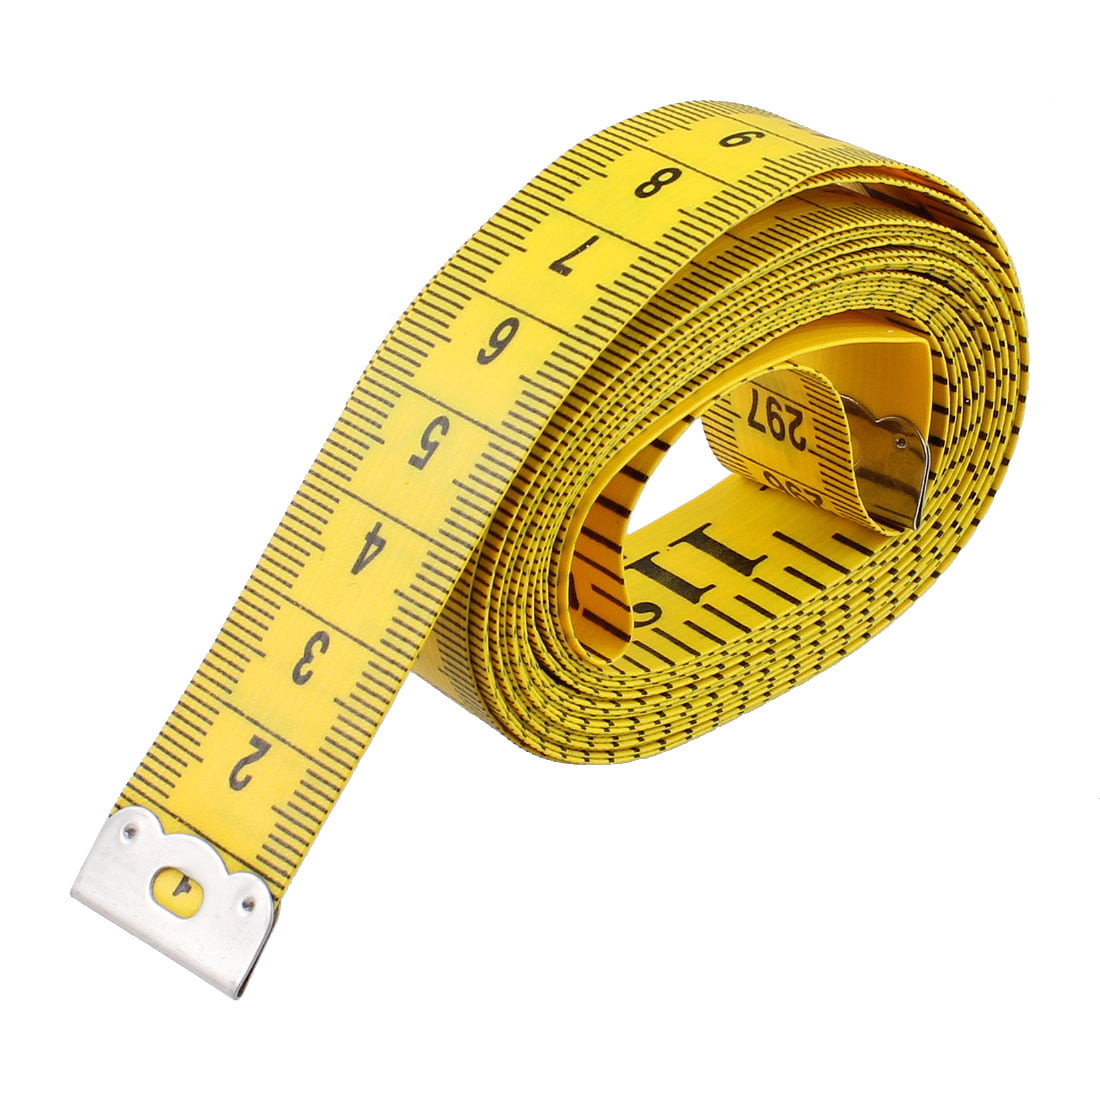 Soft Ruler Tape Measure 300cm//120 Inch Double-Scale Soft Tape Measuring Body Weight Loss Medical Body Measurement Sewing Tailor Cloth Ruler Dressmaker Flexible Ruler Tape Measure 1 Pack by White